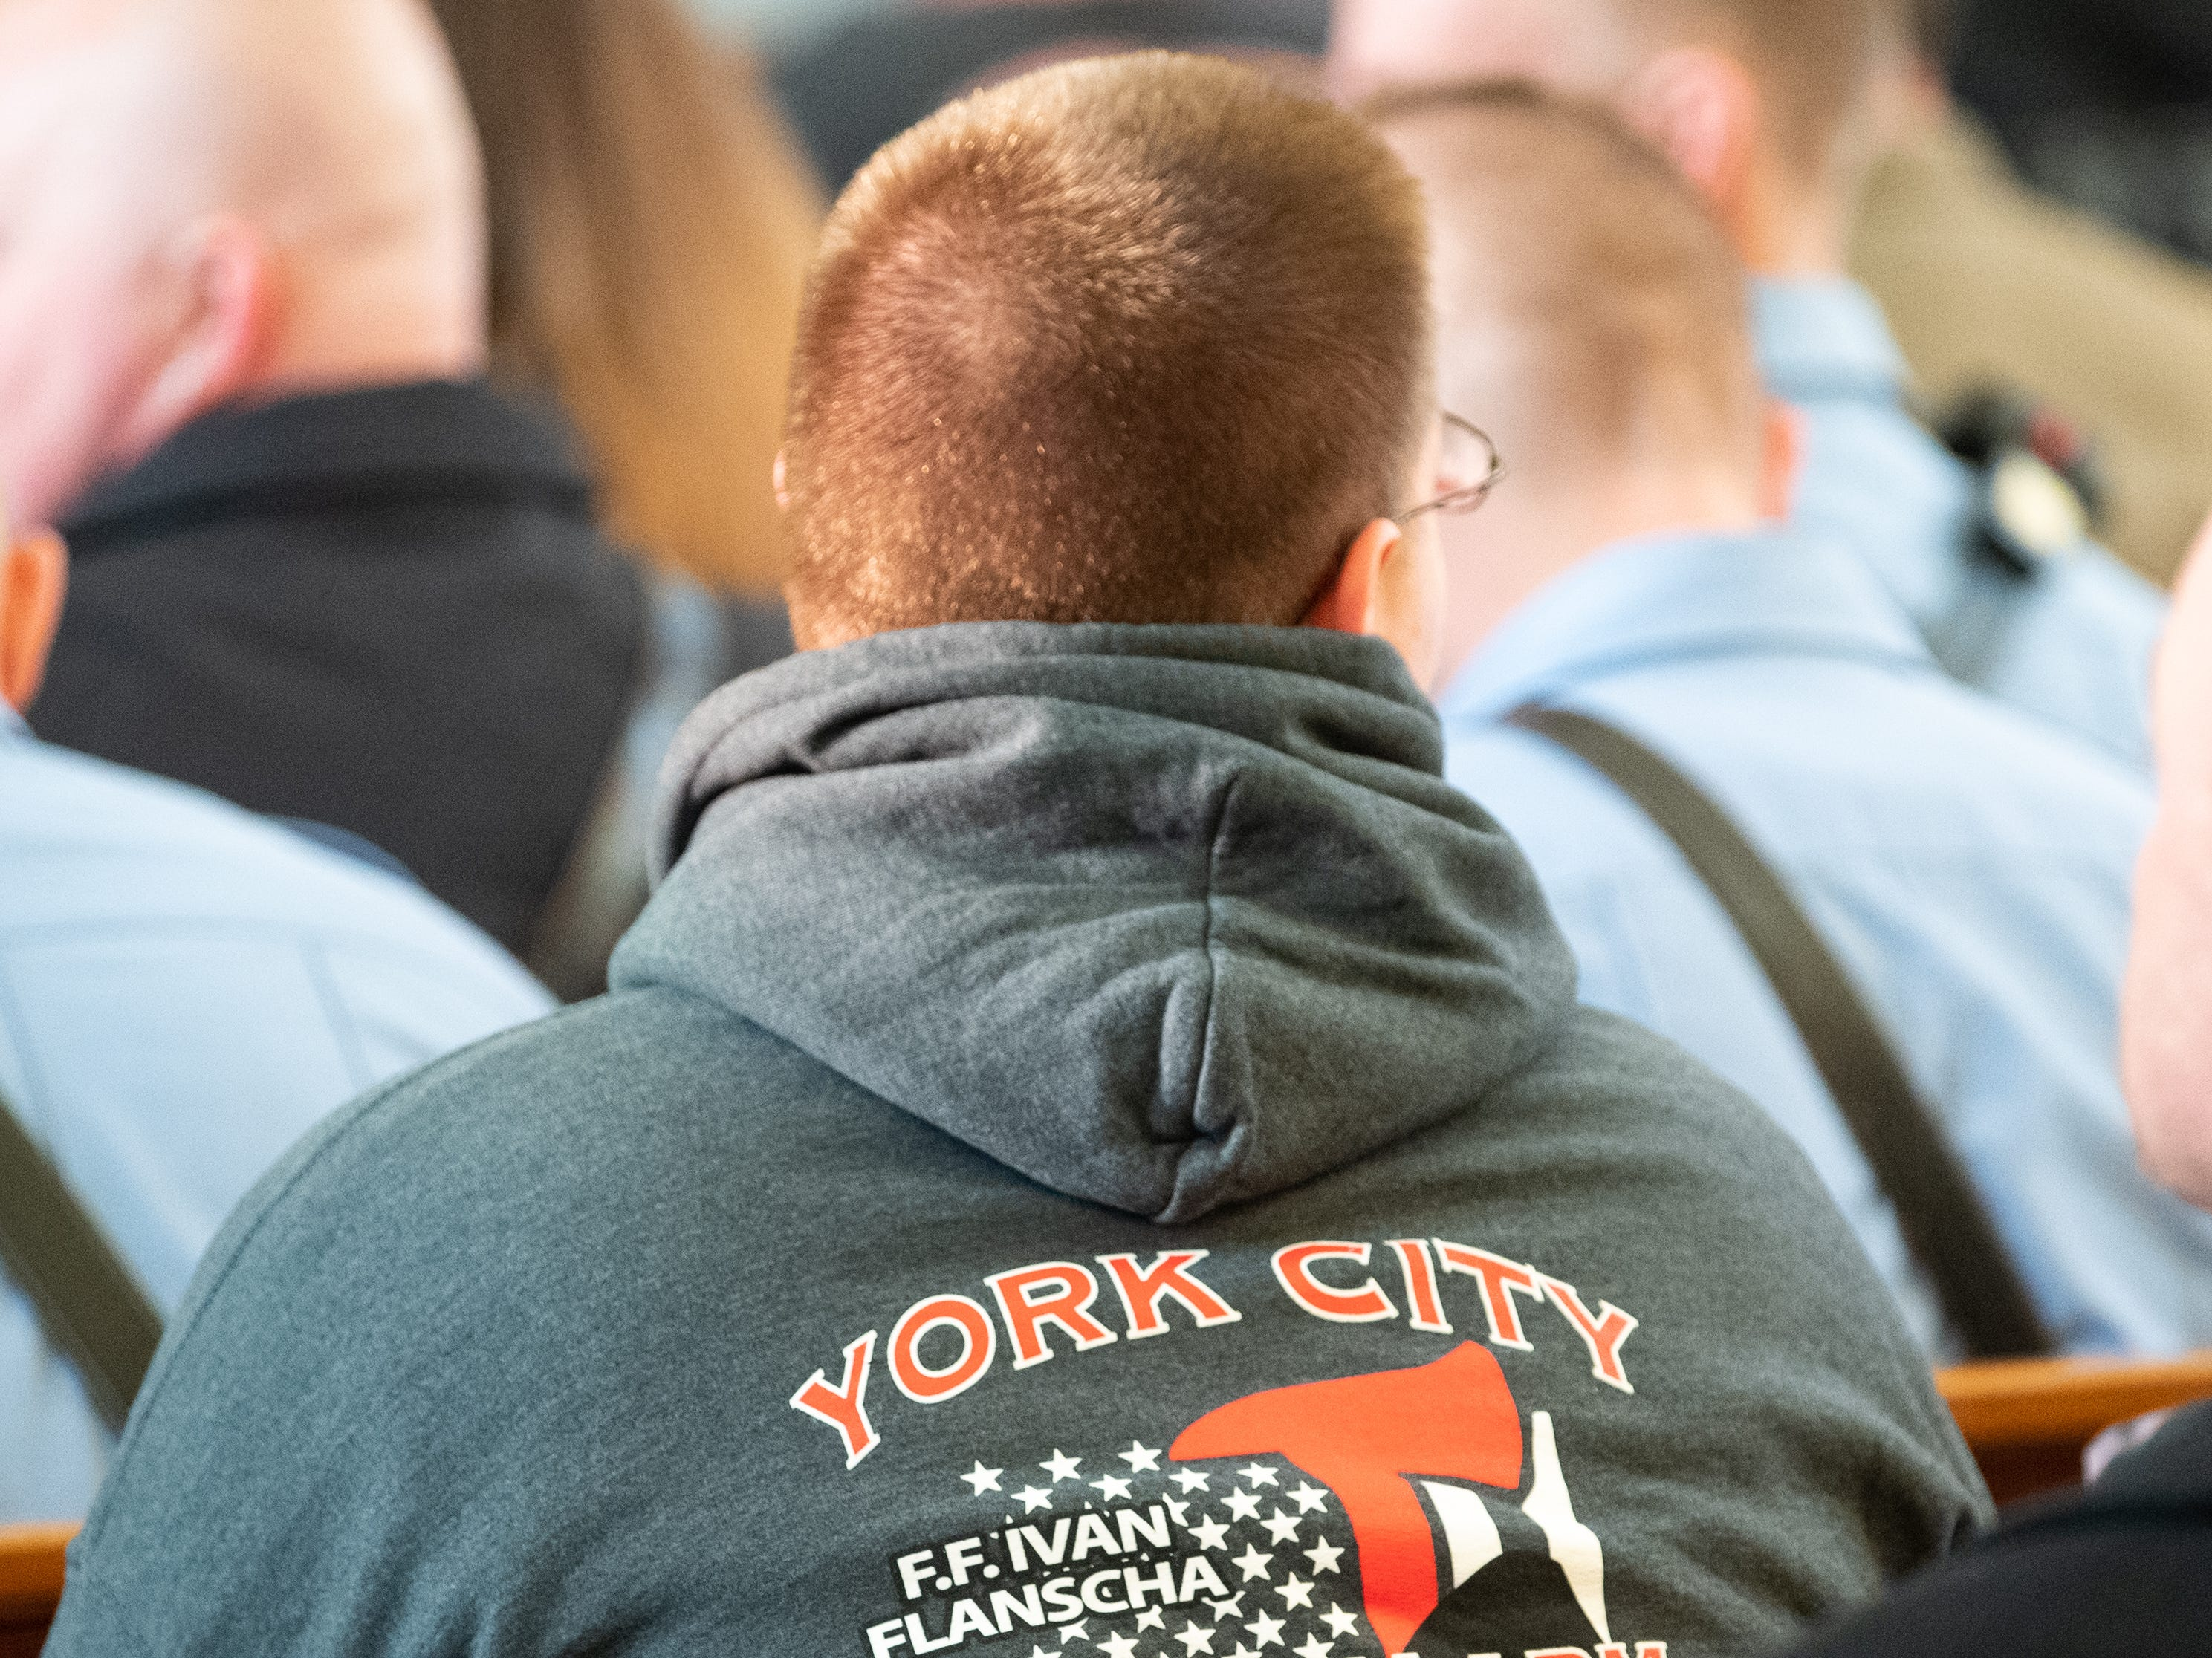 Some York City firefighters wore custom made sweatshirts honoring their fallen brothers, March 22, 2019.